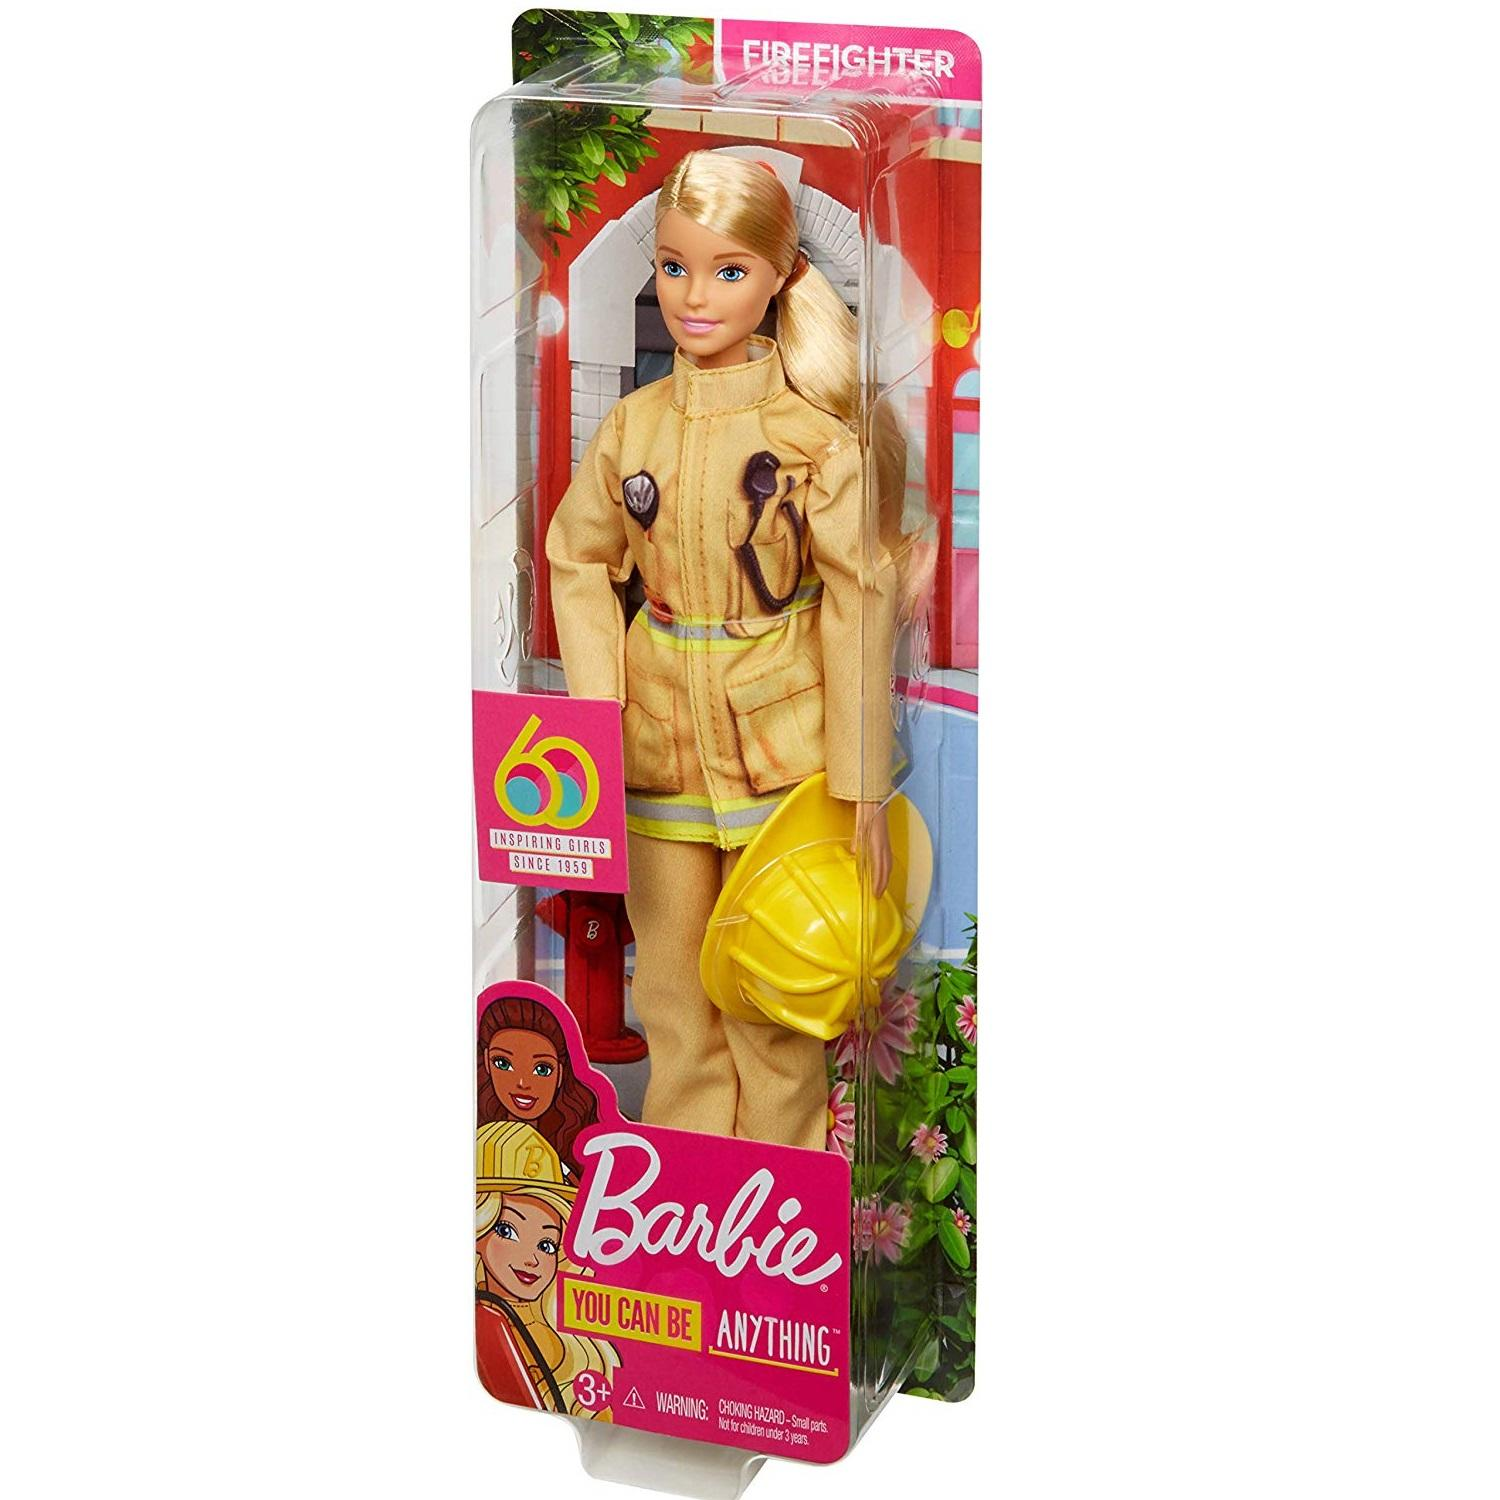 Barbie 60th Anniversary Firefighter Career Doll4